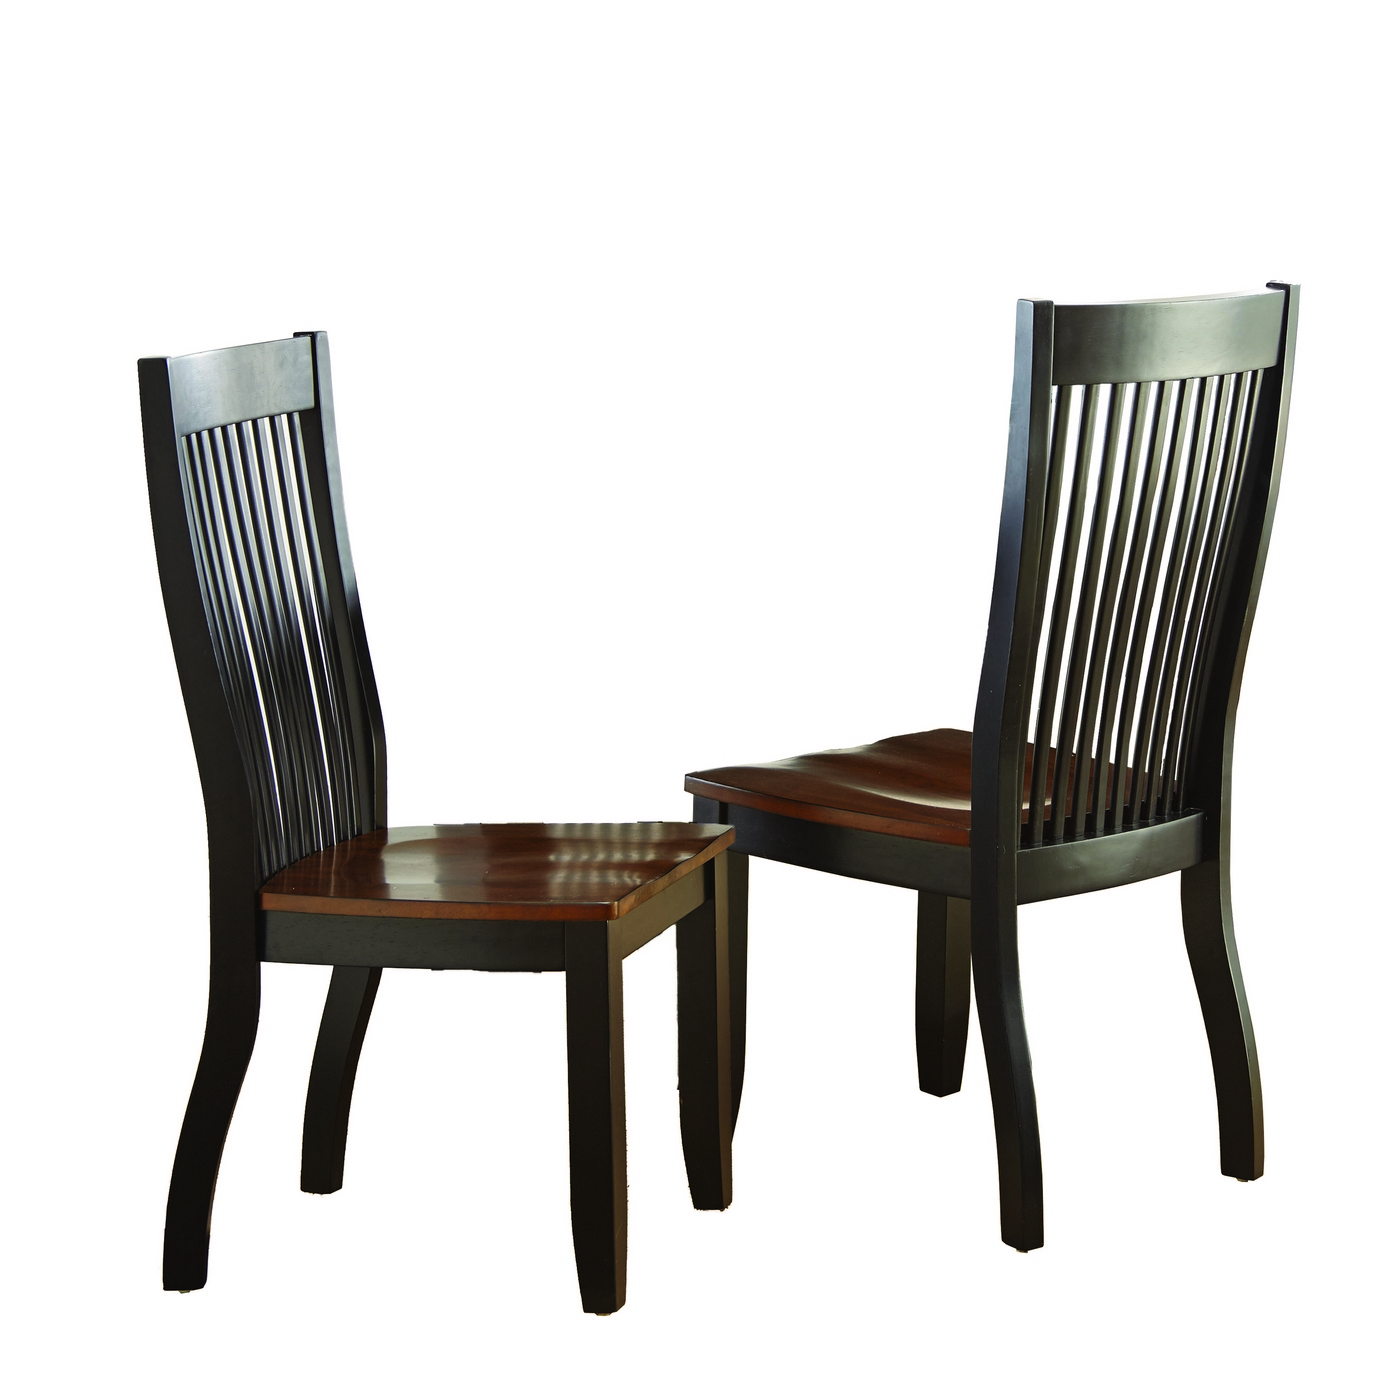 Modern Wooden Dining Chairs ~ Set of lawton modern solid wood mision style slat back